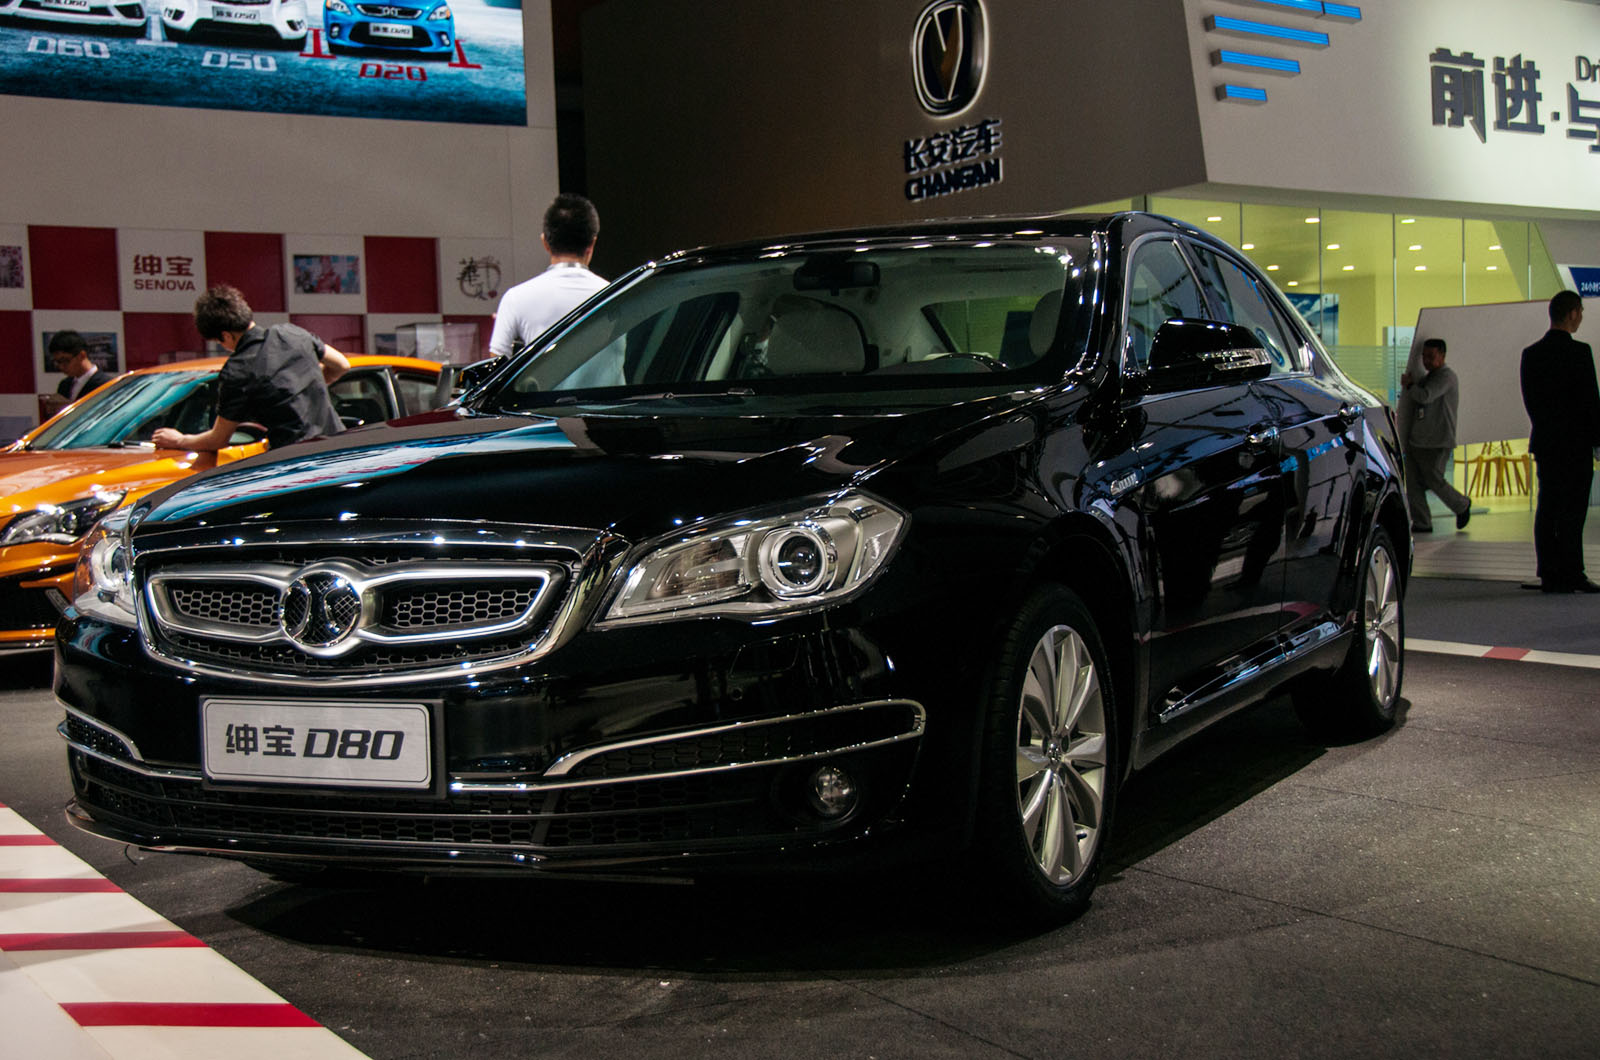 Guangzhou motor show 2014 report and gallery for What does a motor vehicle report show